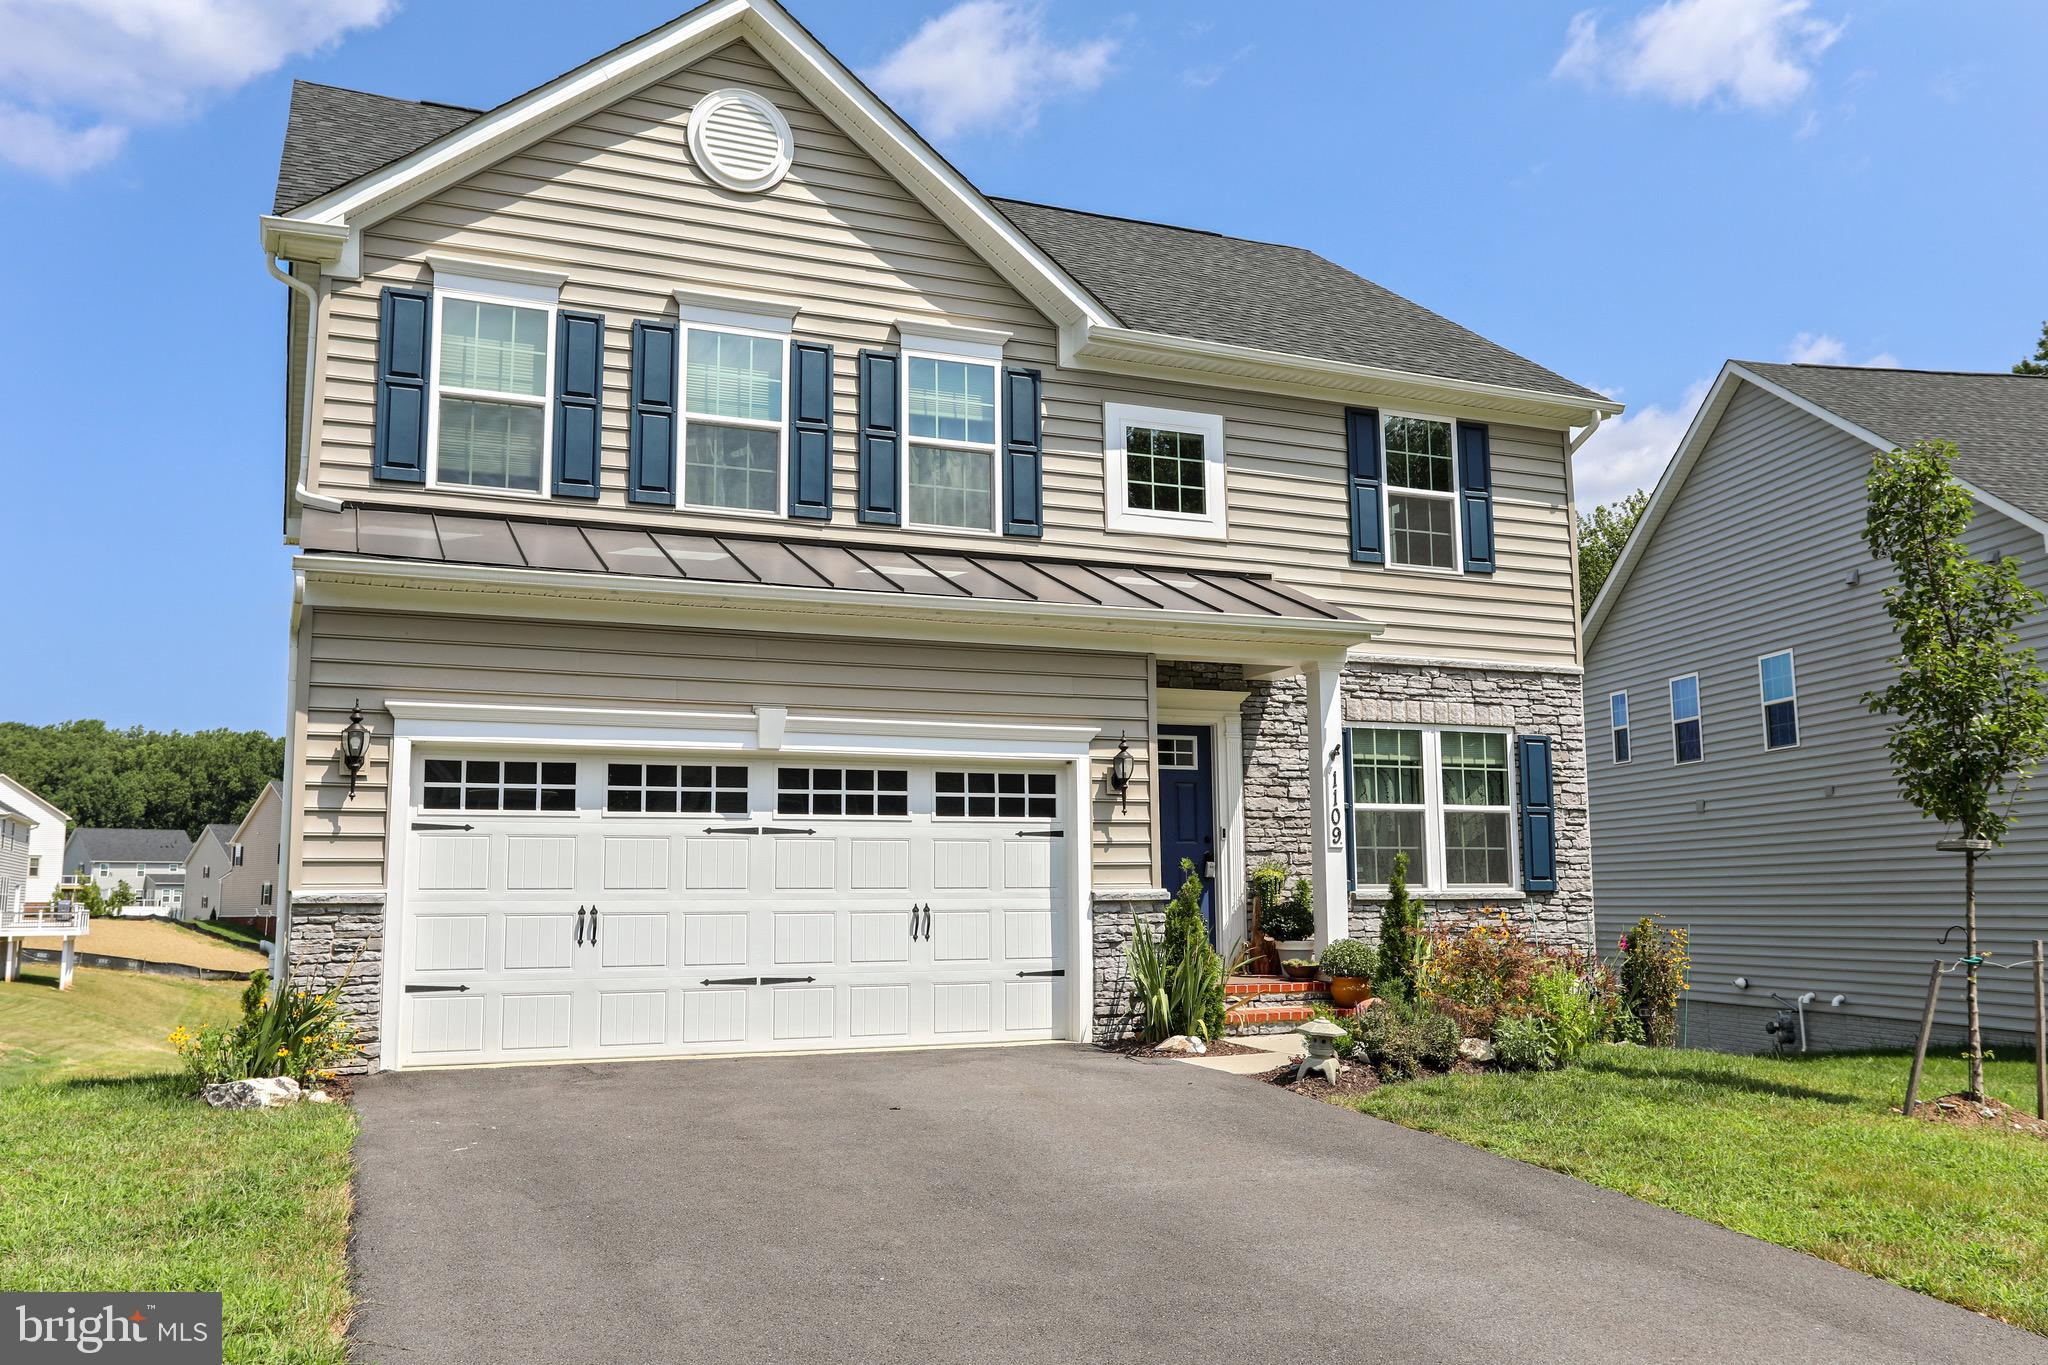 1109 SANCTUARY COURT, SILVER SPRING, MD 20906